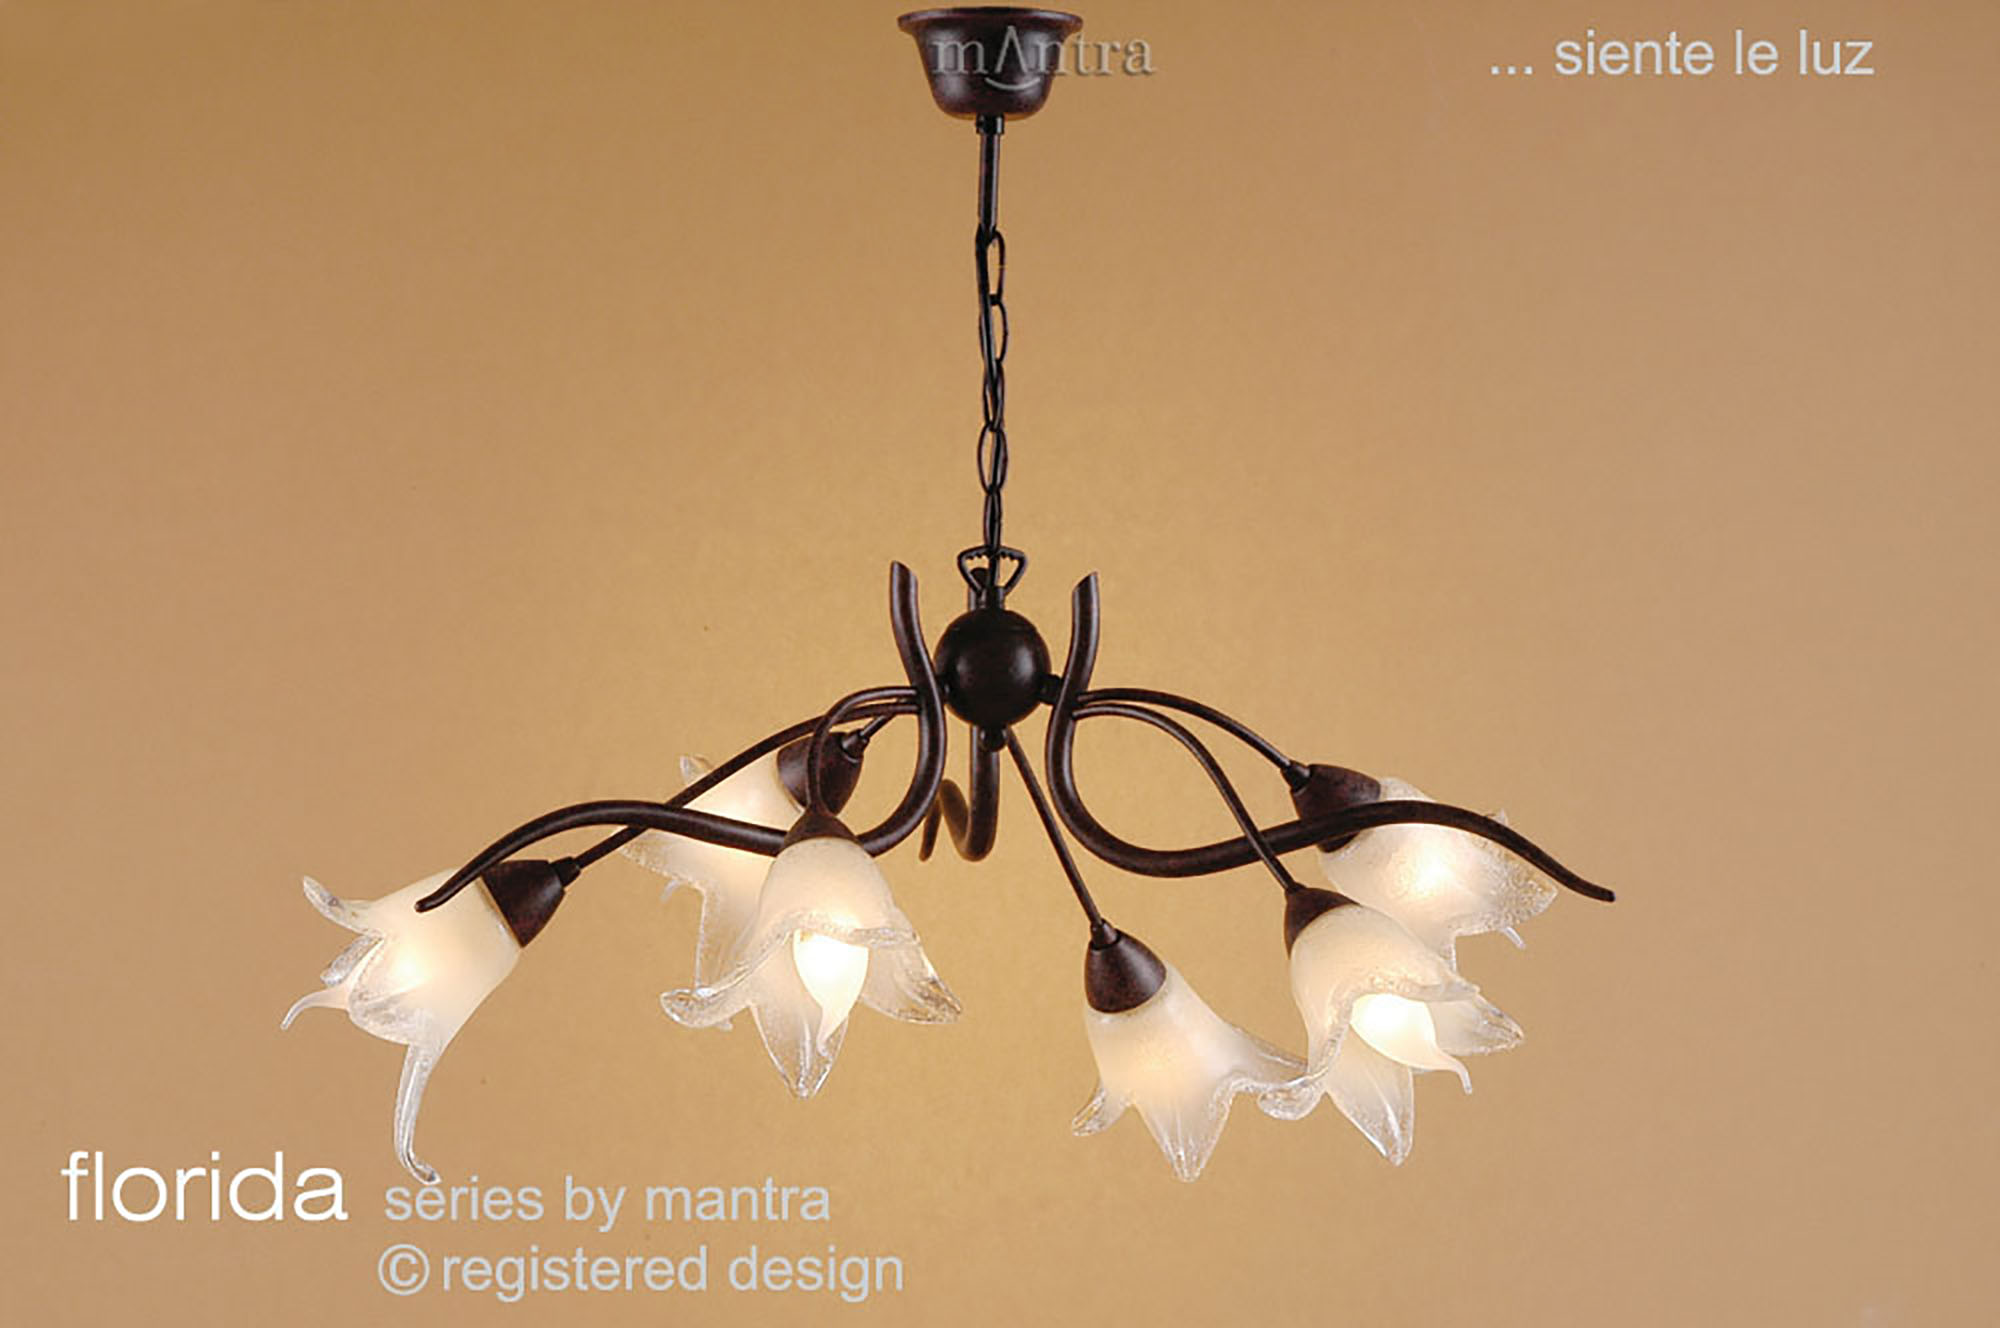 Florida Ceiling Lights Mantra Traditional Ceiling Lights